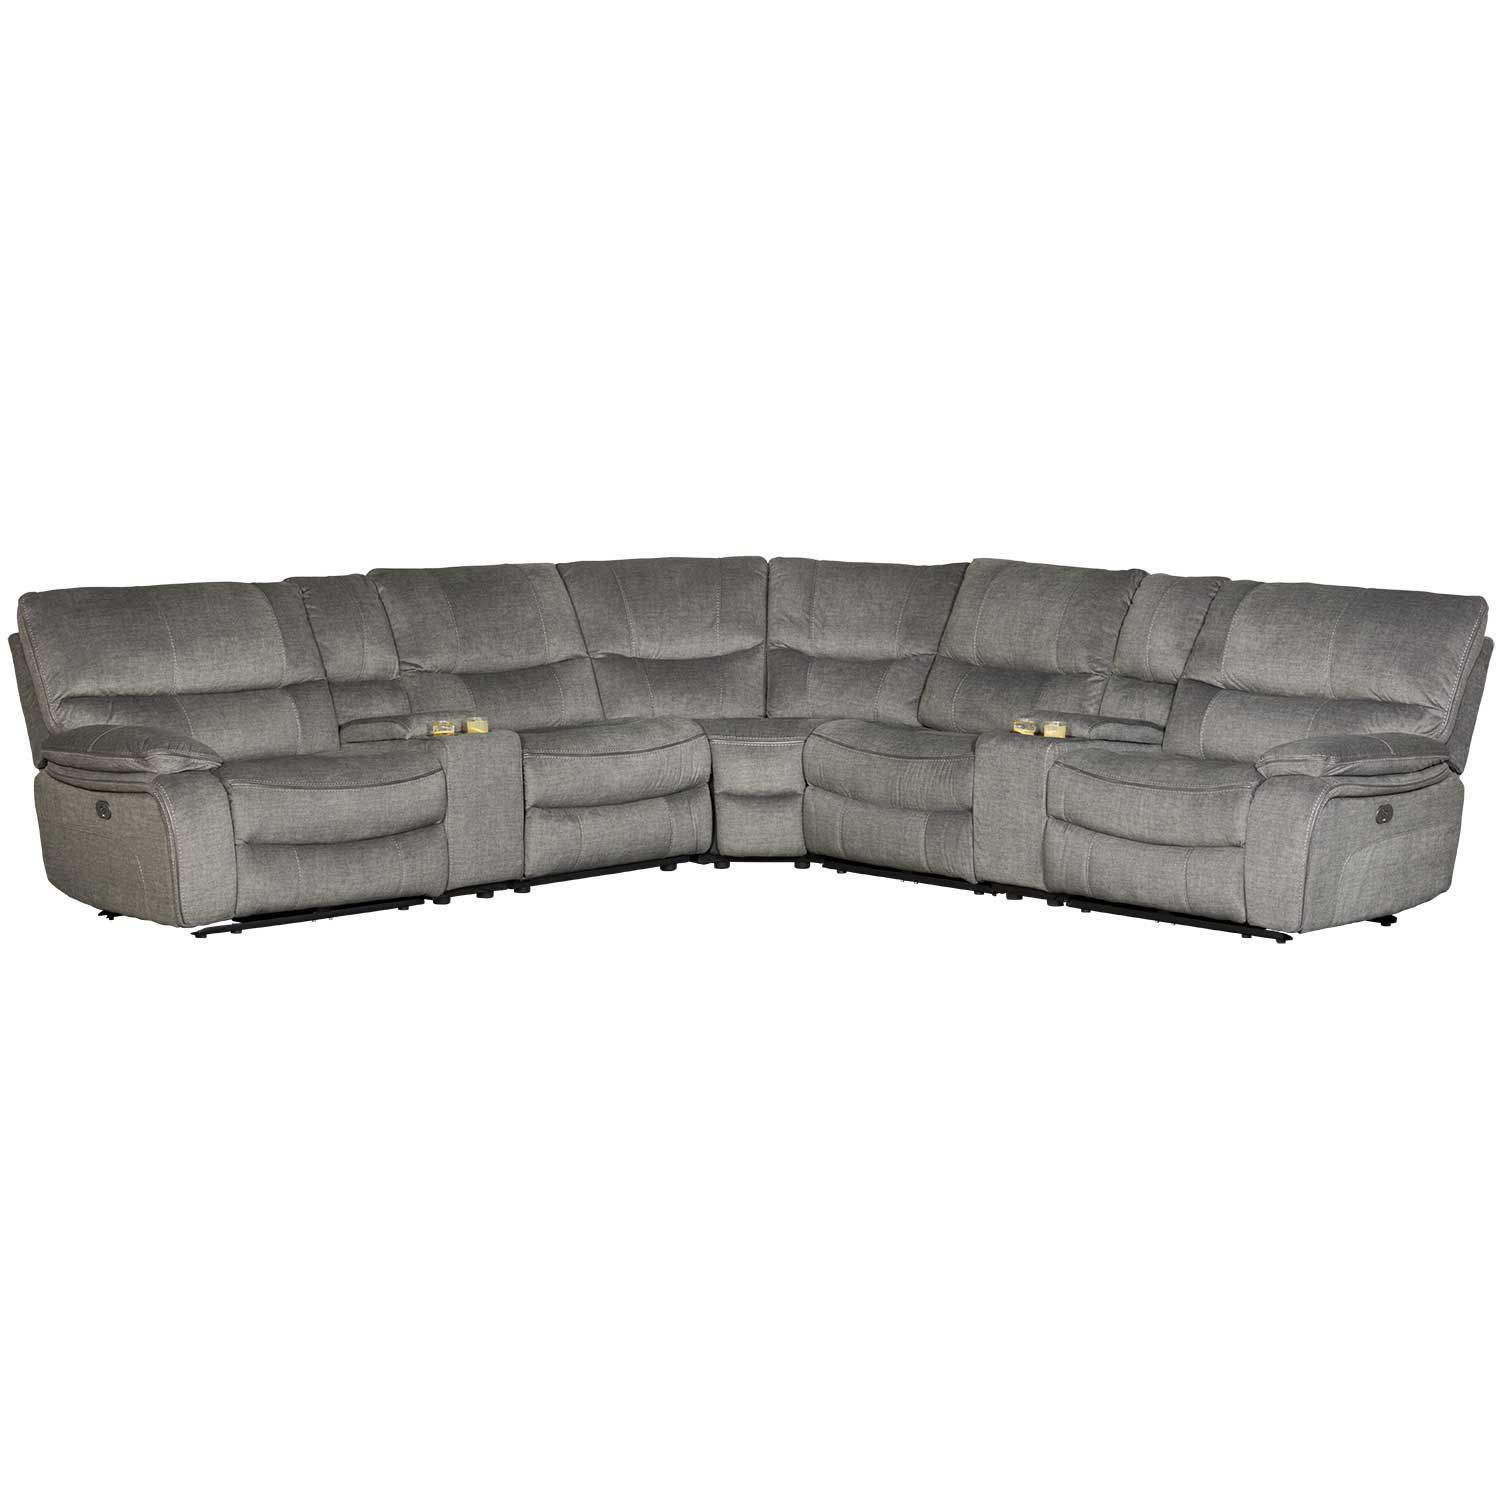 Picture of Pike 7 Piece Power Reclining Sectional with Power Adjustable Headrest